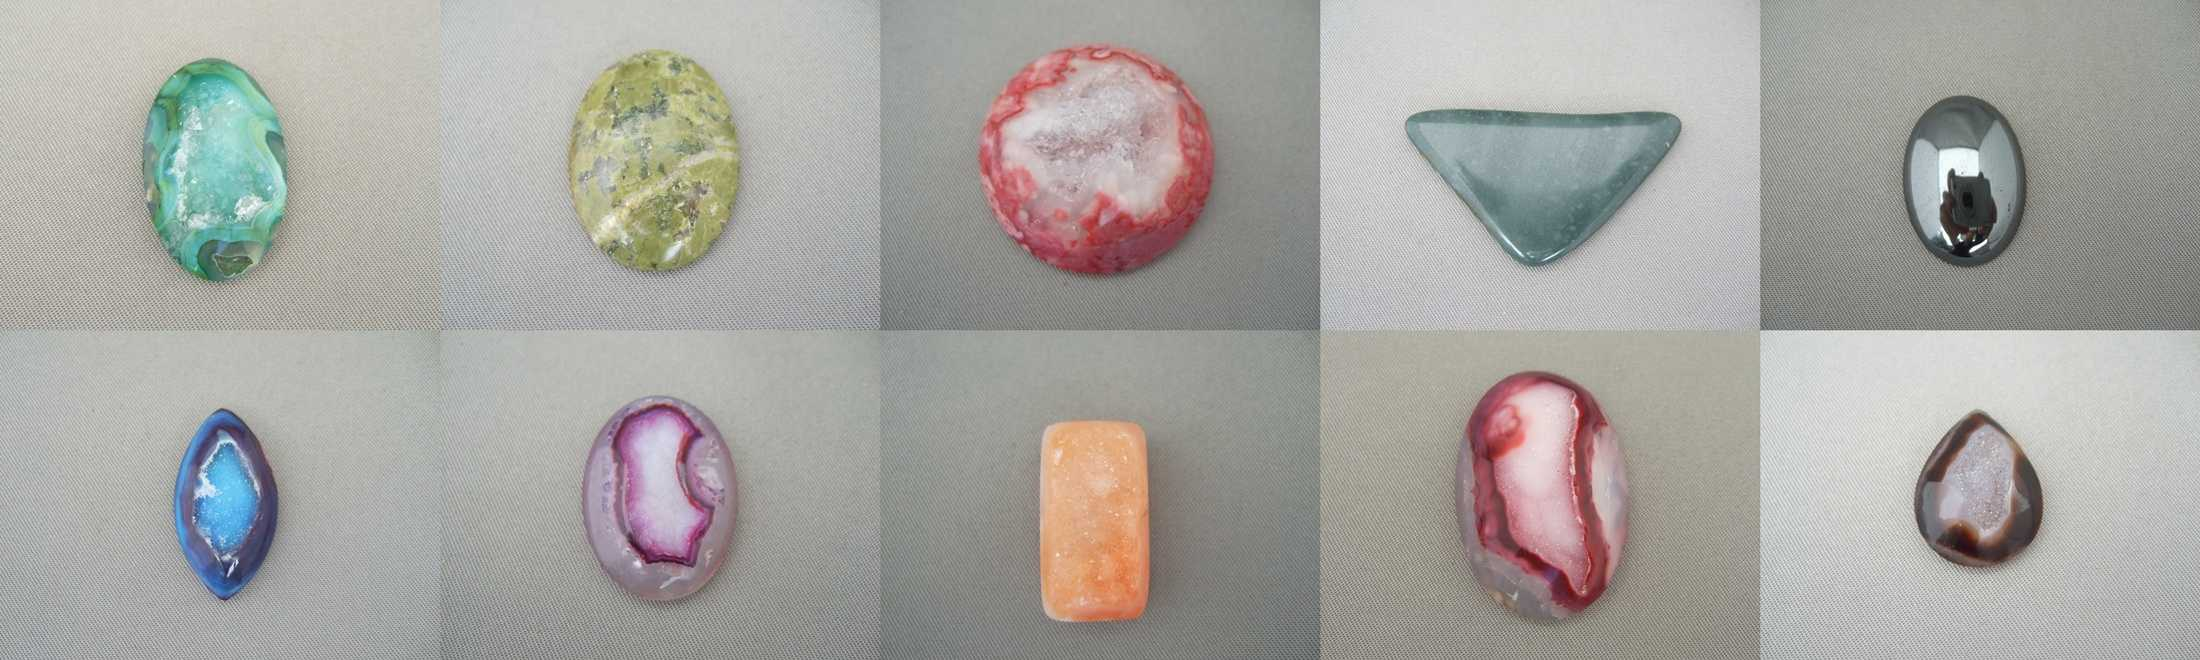 Pantone Gemstones Fall 2013